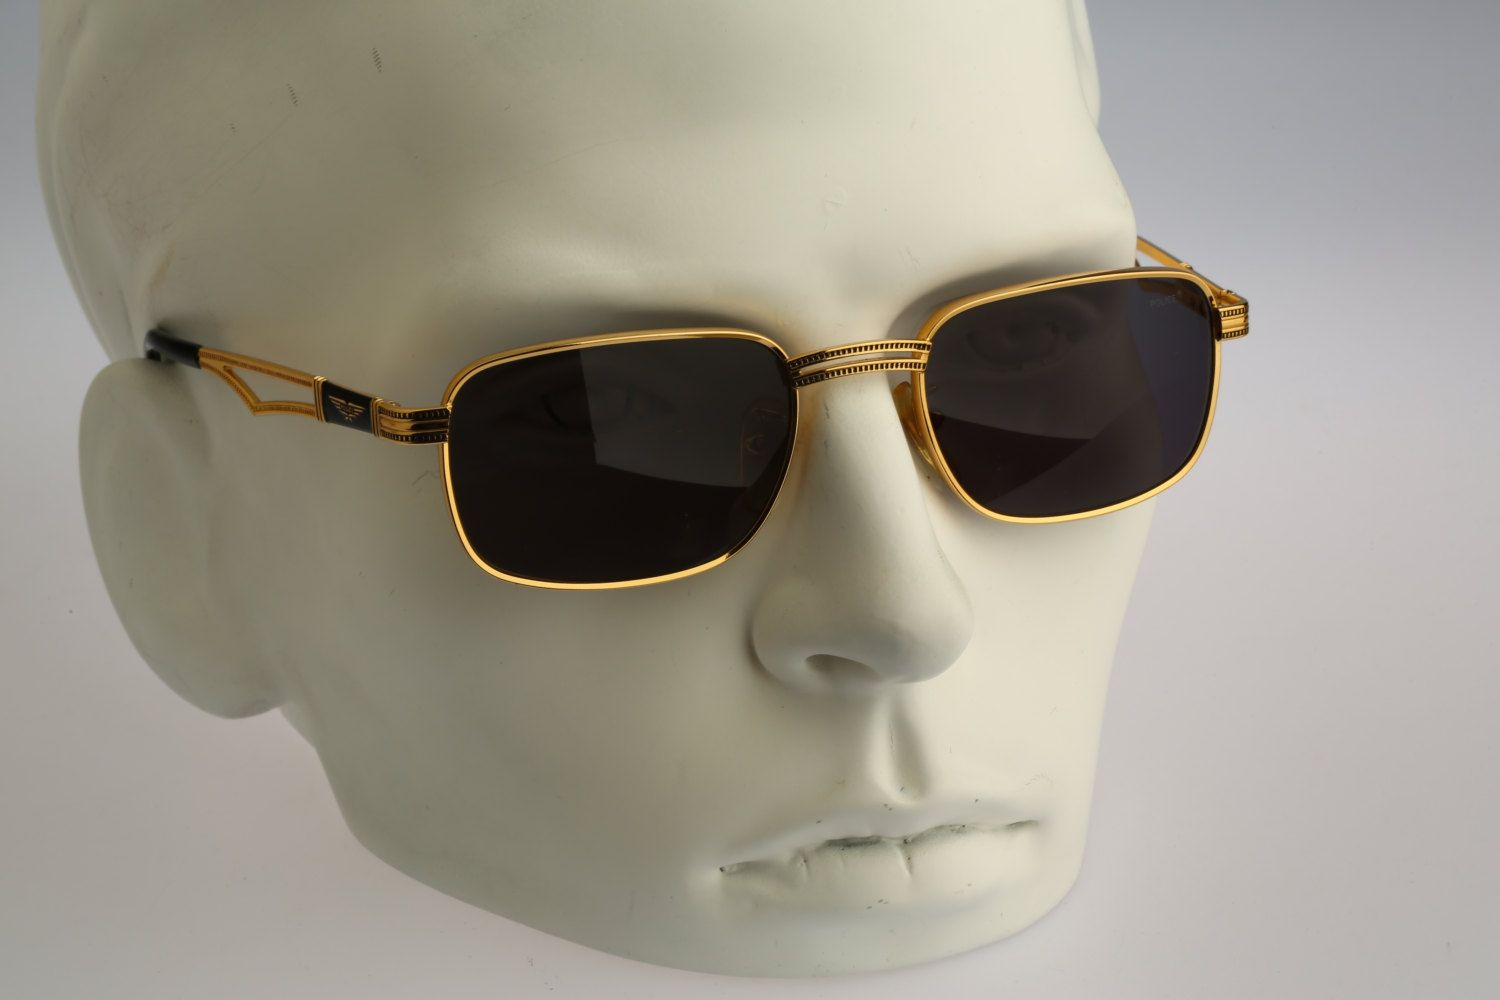 f1dbff1e2 ... One Size $200 - Grailed. Items similar to Police Mod 2224 Col 103 / Vintage  sunglasses / 90s / NOS on Etsy .